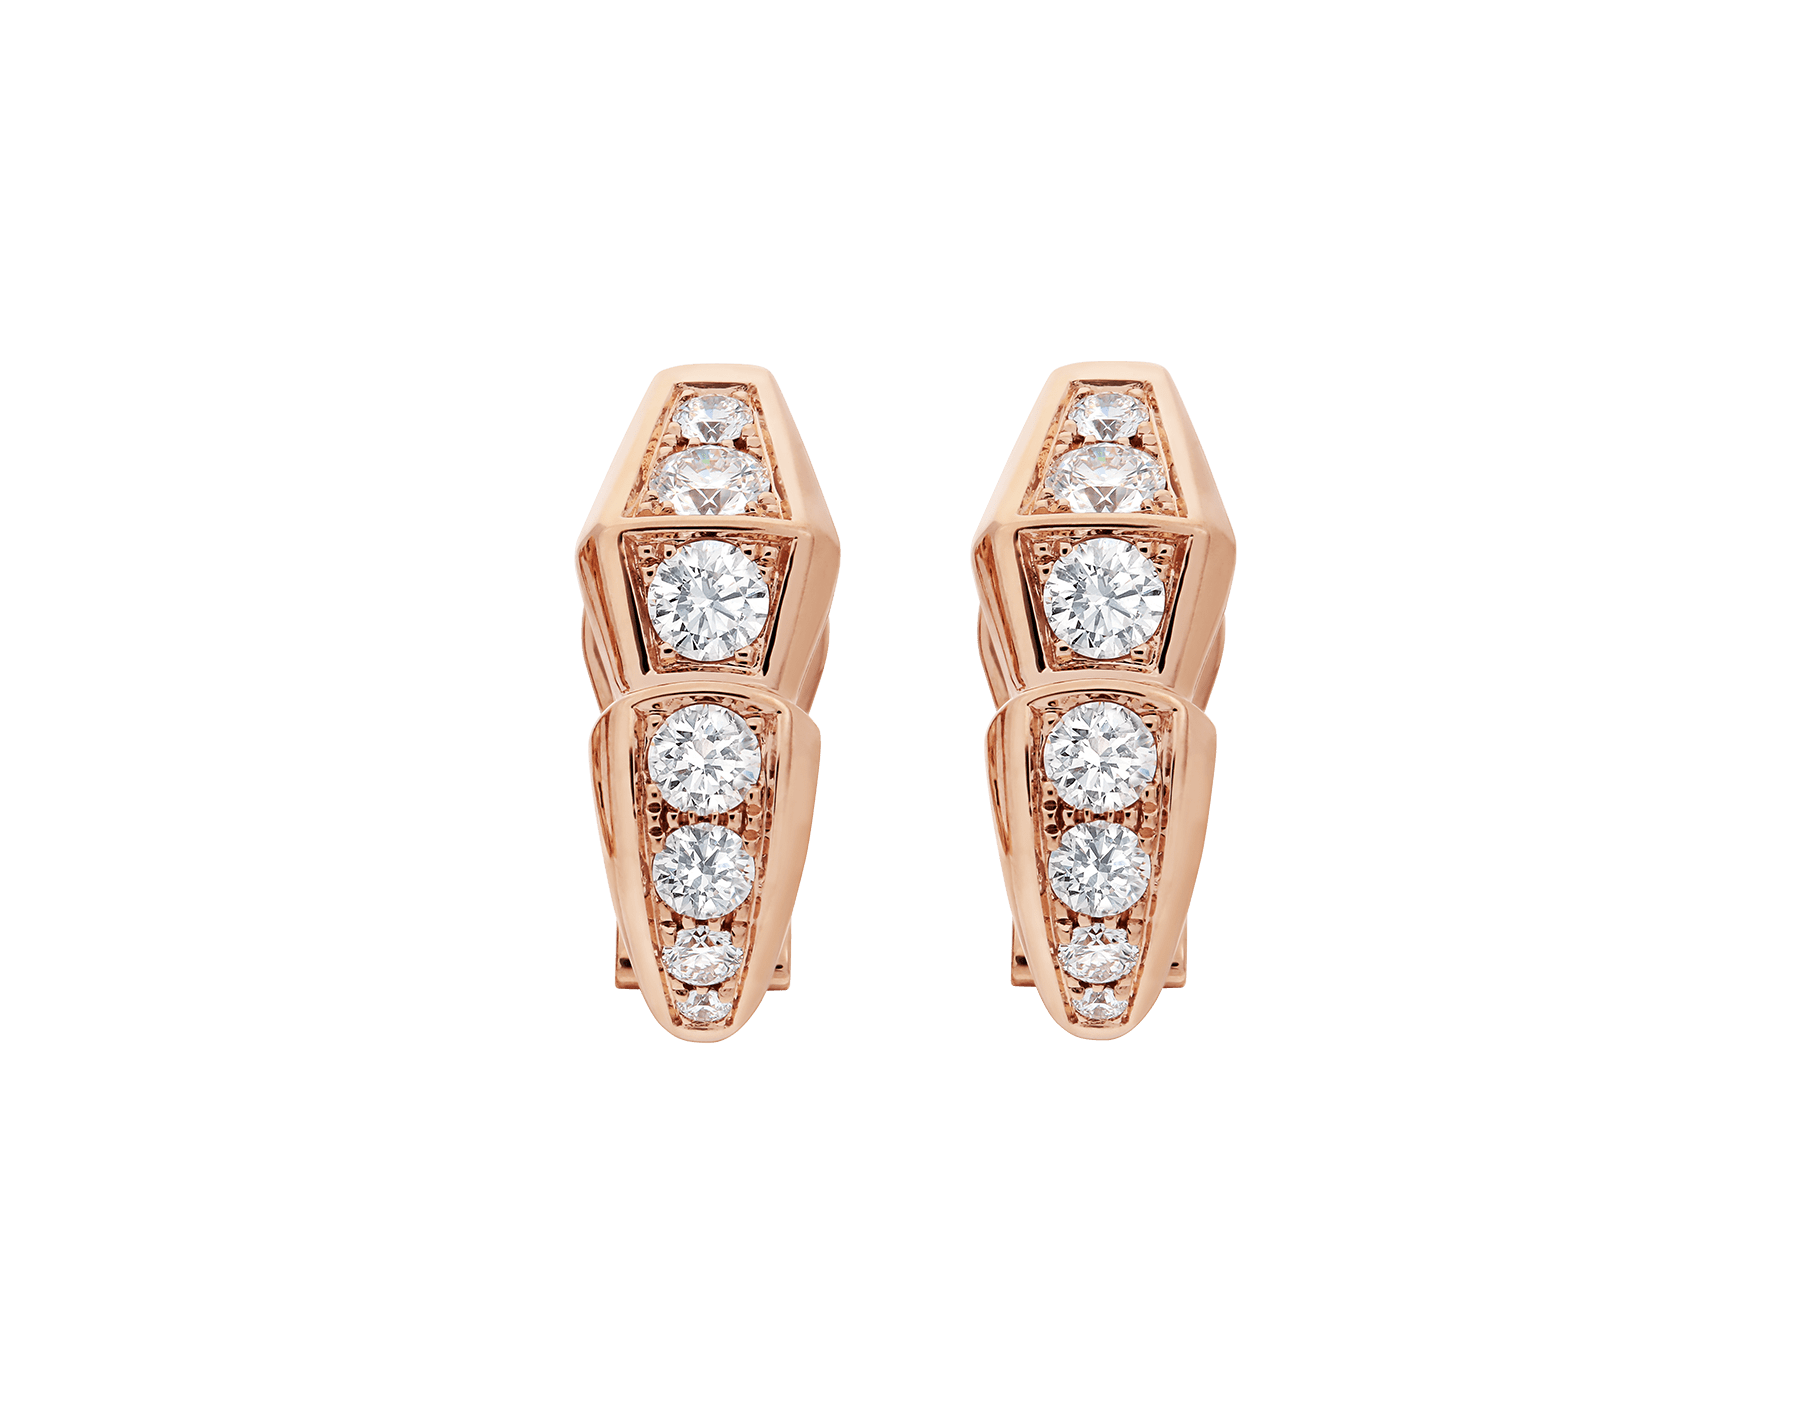 Serpenti Viper earrings in 18 kt rose gold, set with pavé diamonds. 354035 image 1